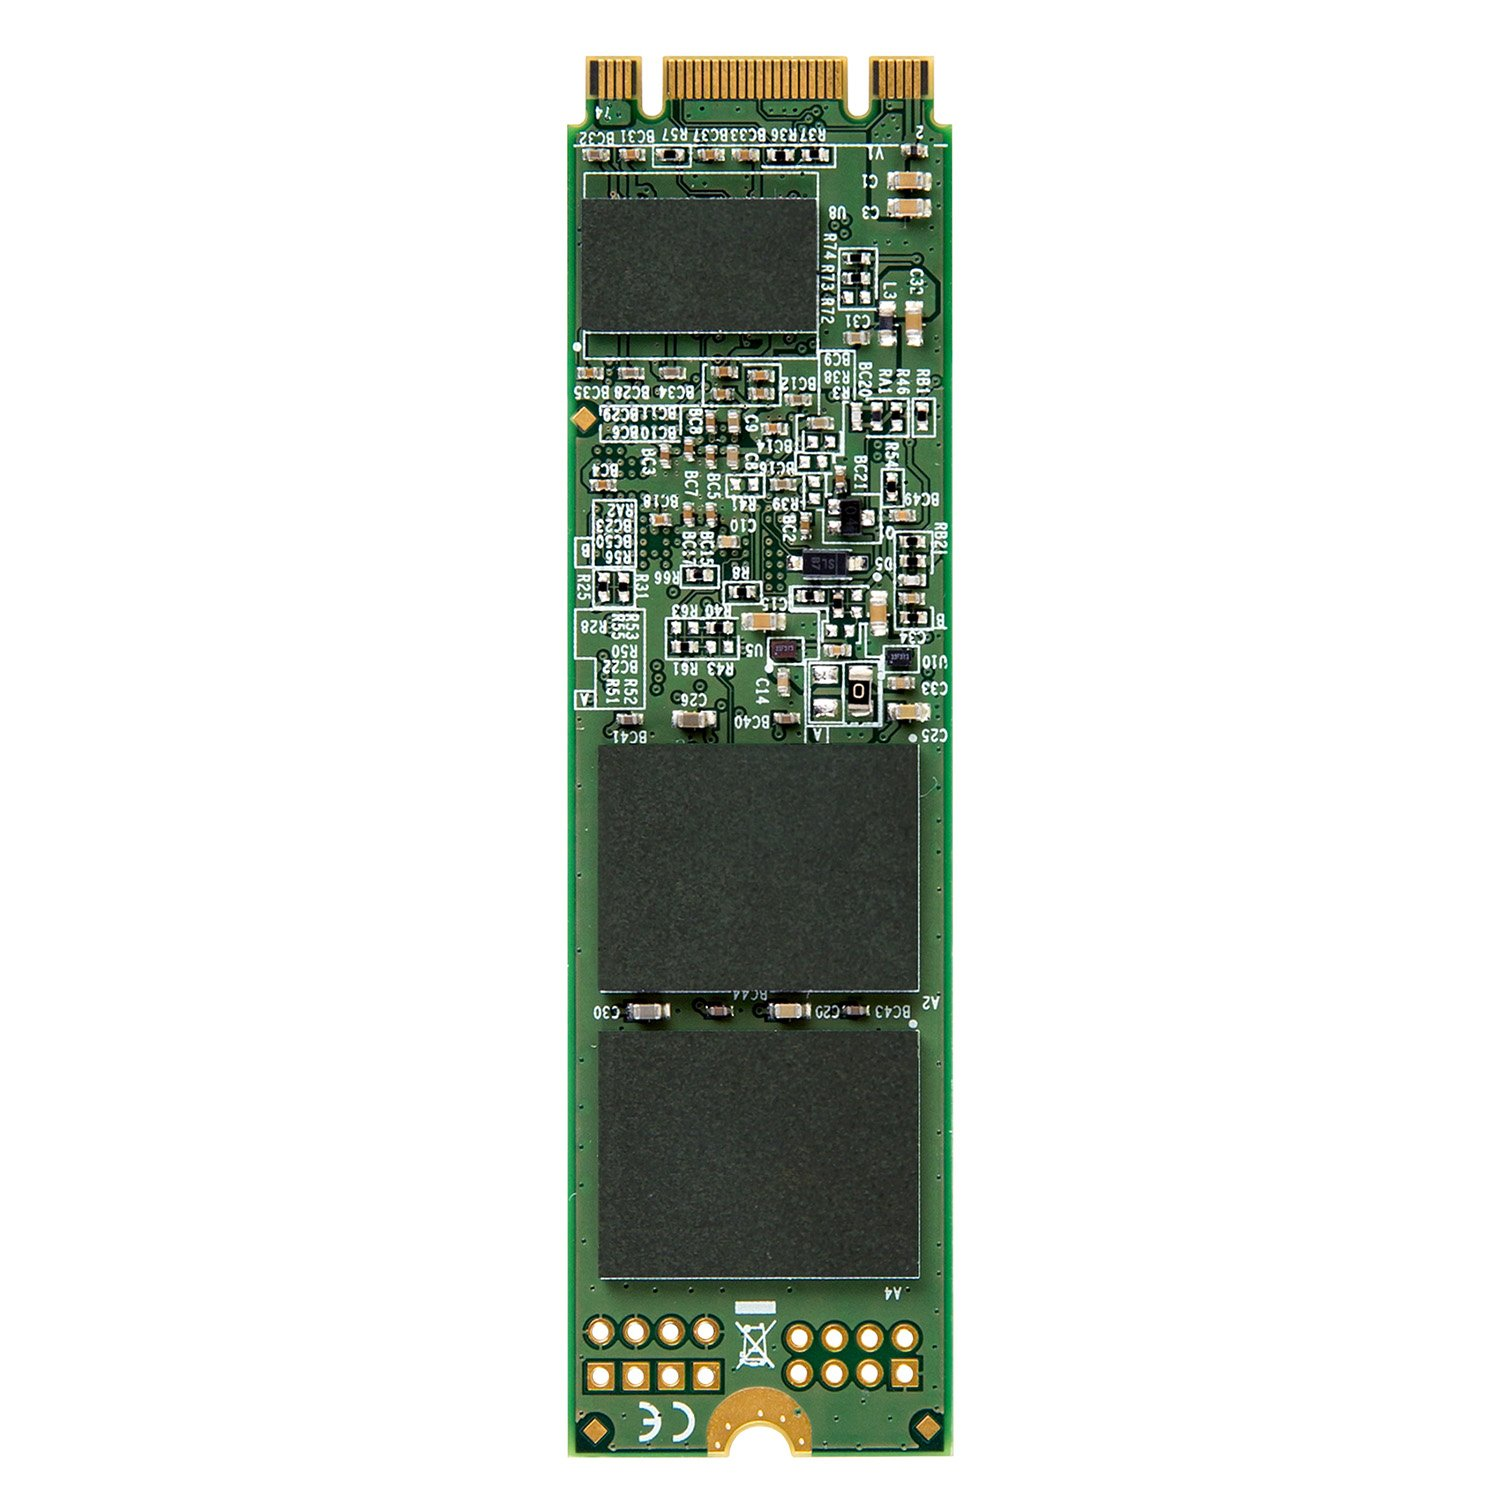 Transcend 128GB SATA III 6Gb/s MTS800 80 mm M.2 Solid State Drive (TS128GMTS800) by Transcend (Image #2)